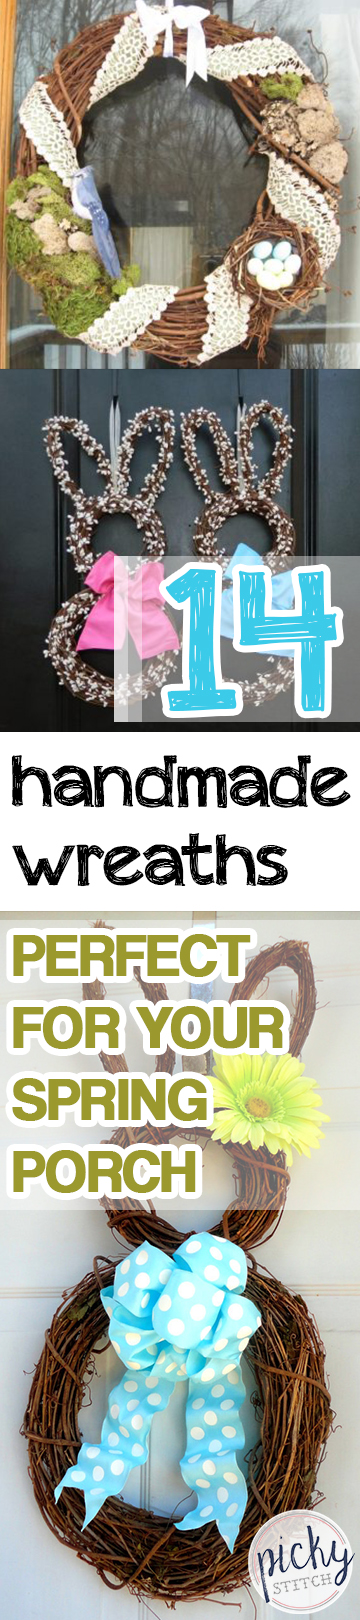 Handmade Wreaths, Porch Decor, Spring Porch Decor, Decorating for Spring, Spring Porch, How to Decorate Your Porch for Spring, Easy Ways to Decorate for Spring, Homemade Porch Decor, Popular Pin.